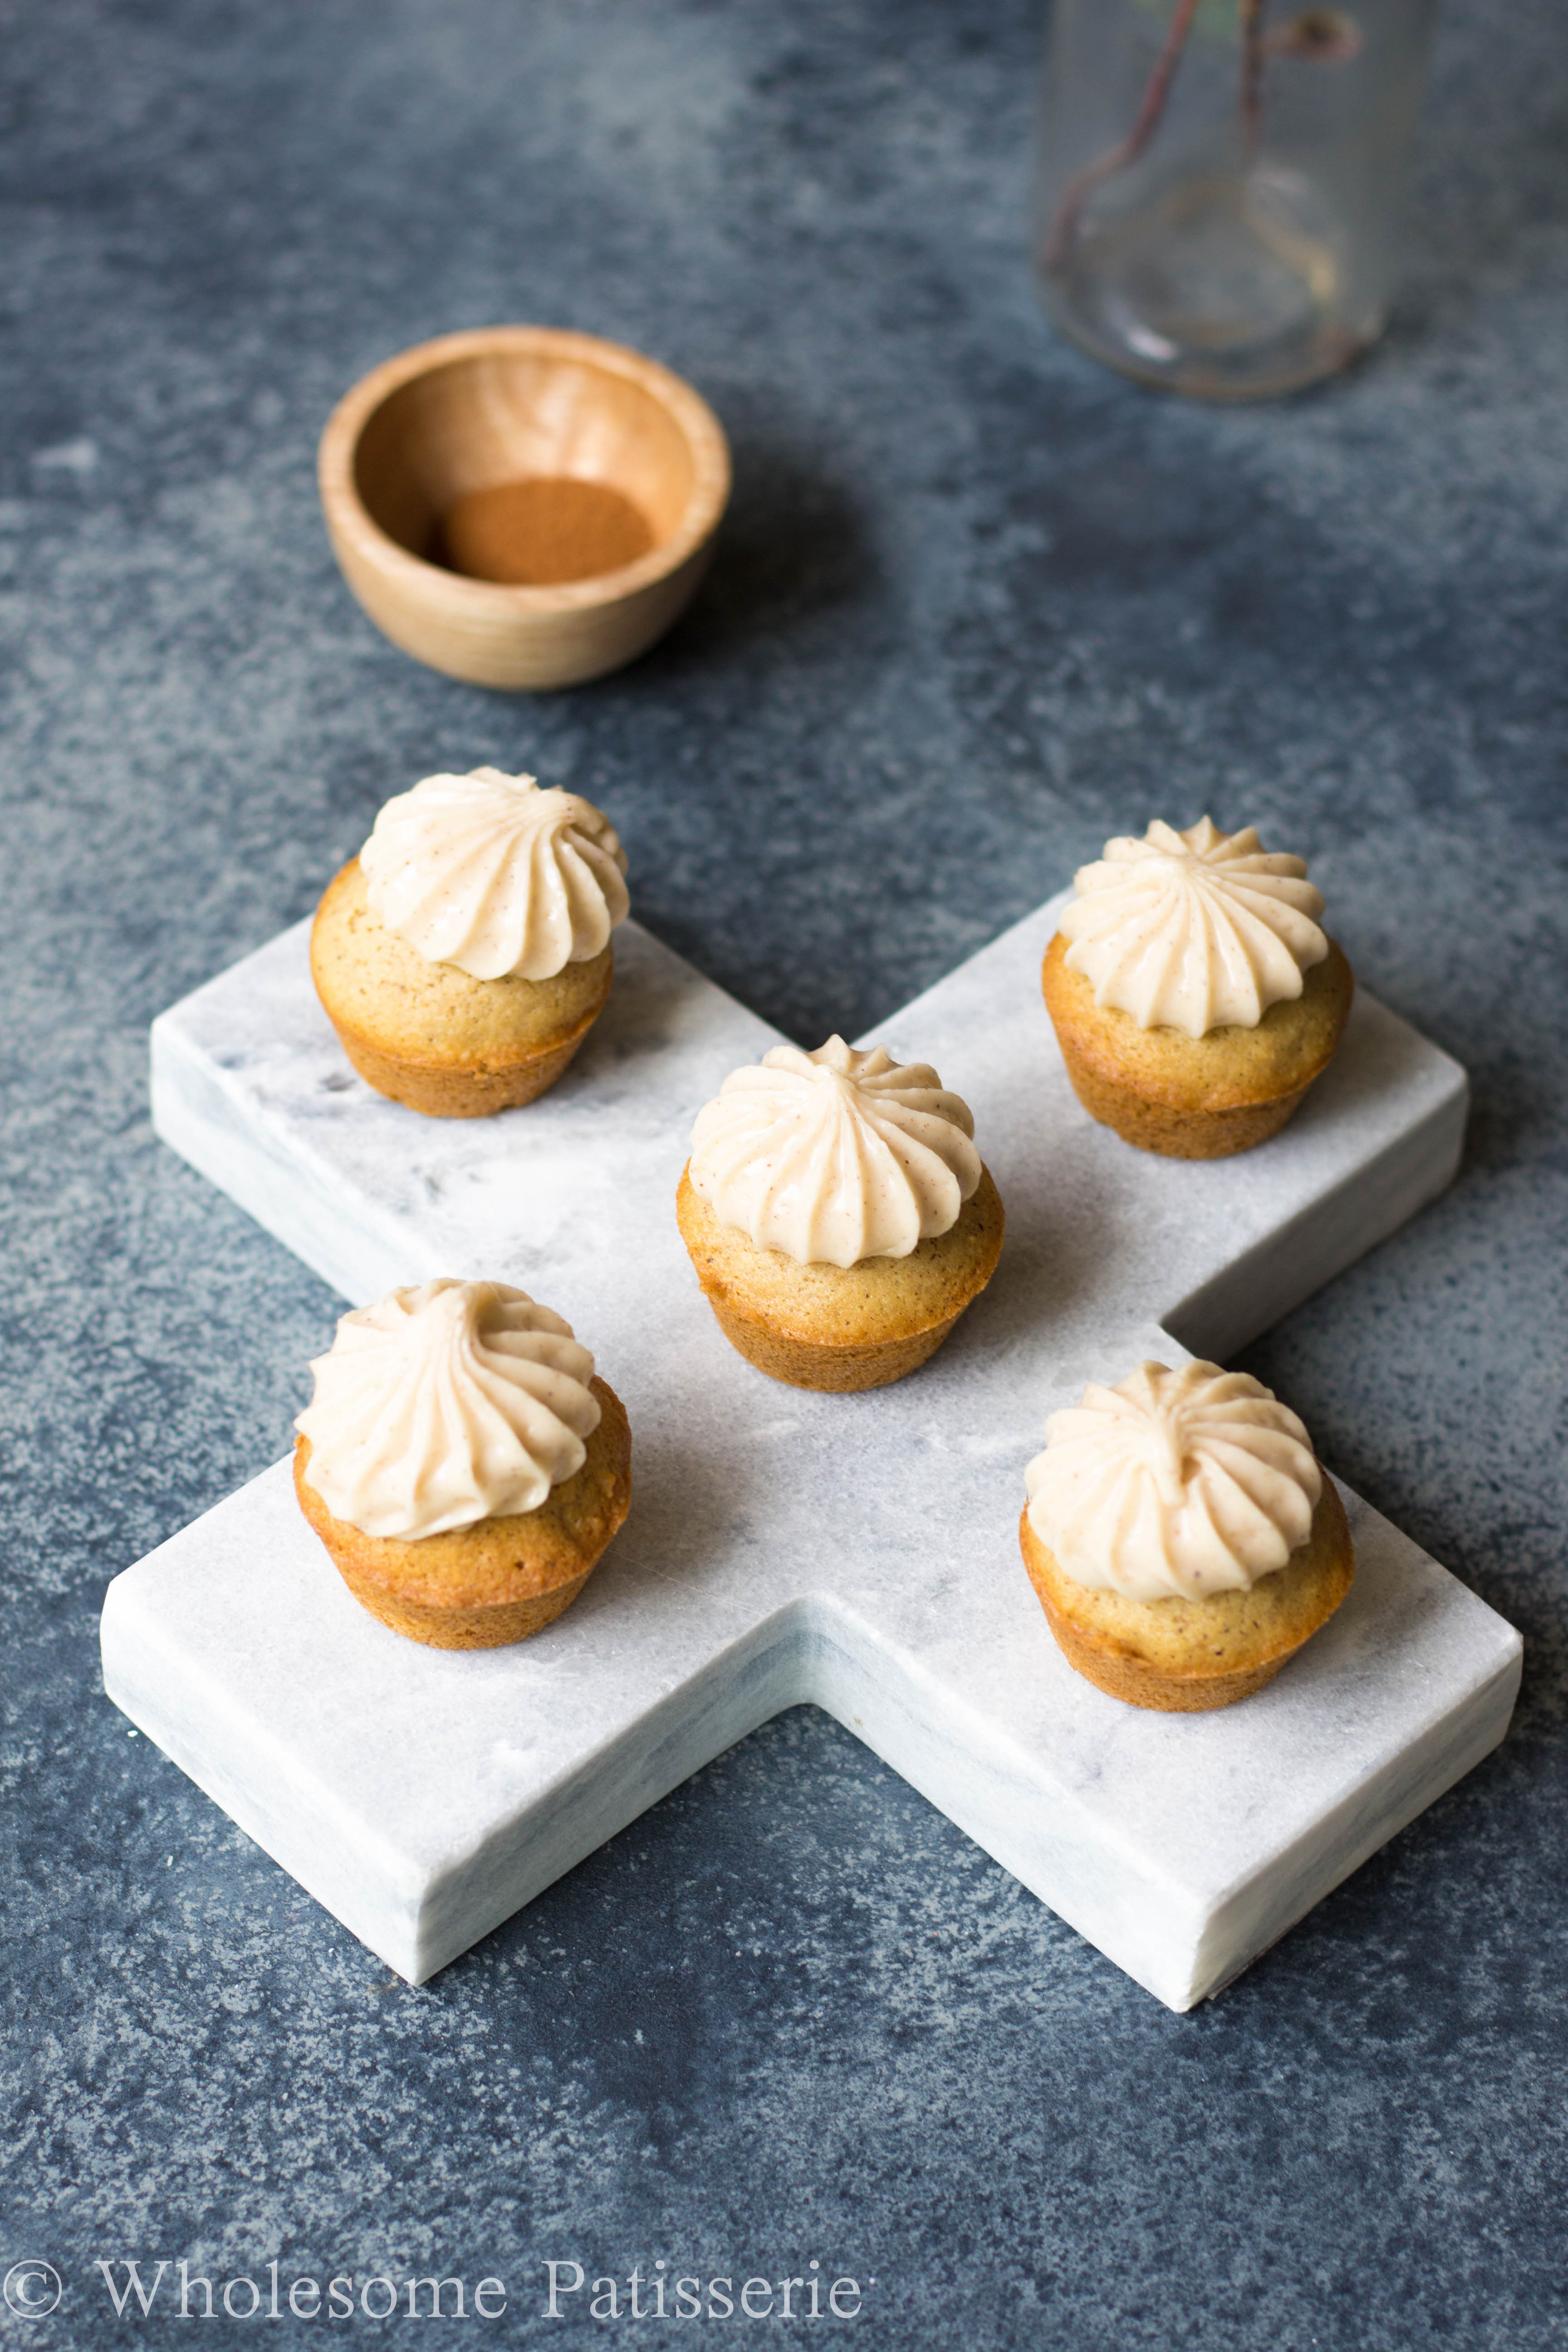 GLUTEN-FREE-cupcake-recipe-honey-cupcakes-vegetarian-DELICIOUS-easy-yummy-cupcakes-cinnamon-mini-cupcakes-wholesome-patisserie-allergy-free